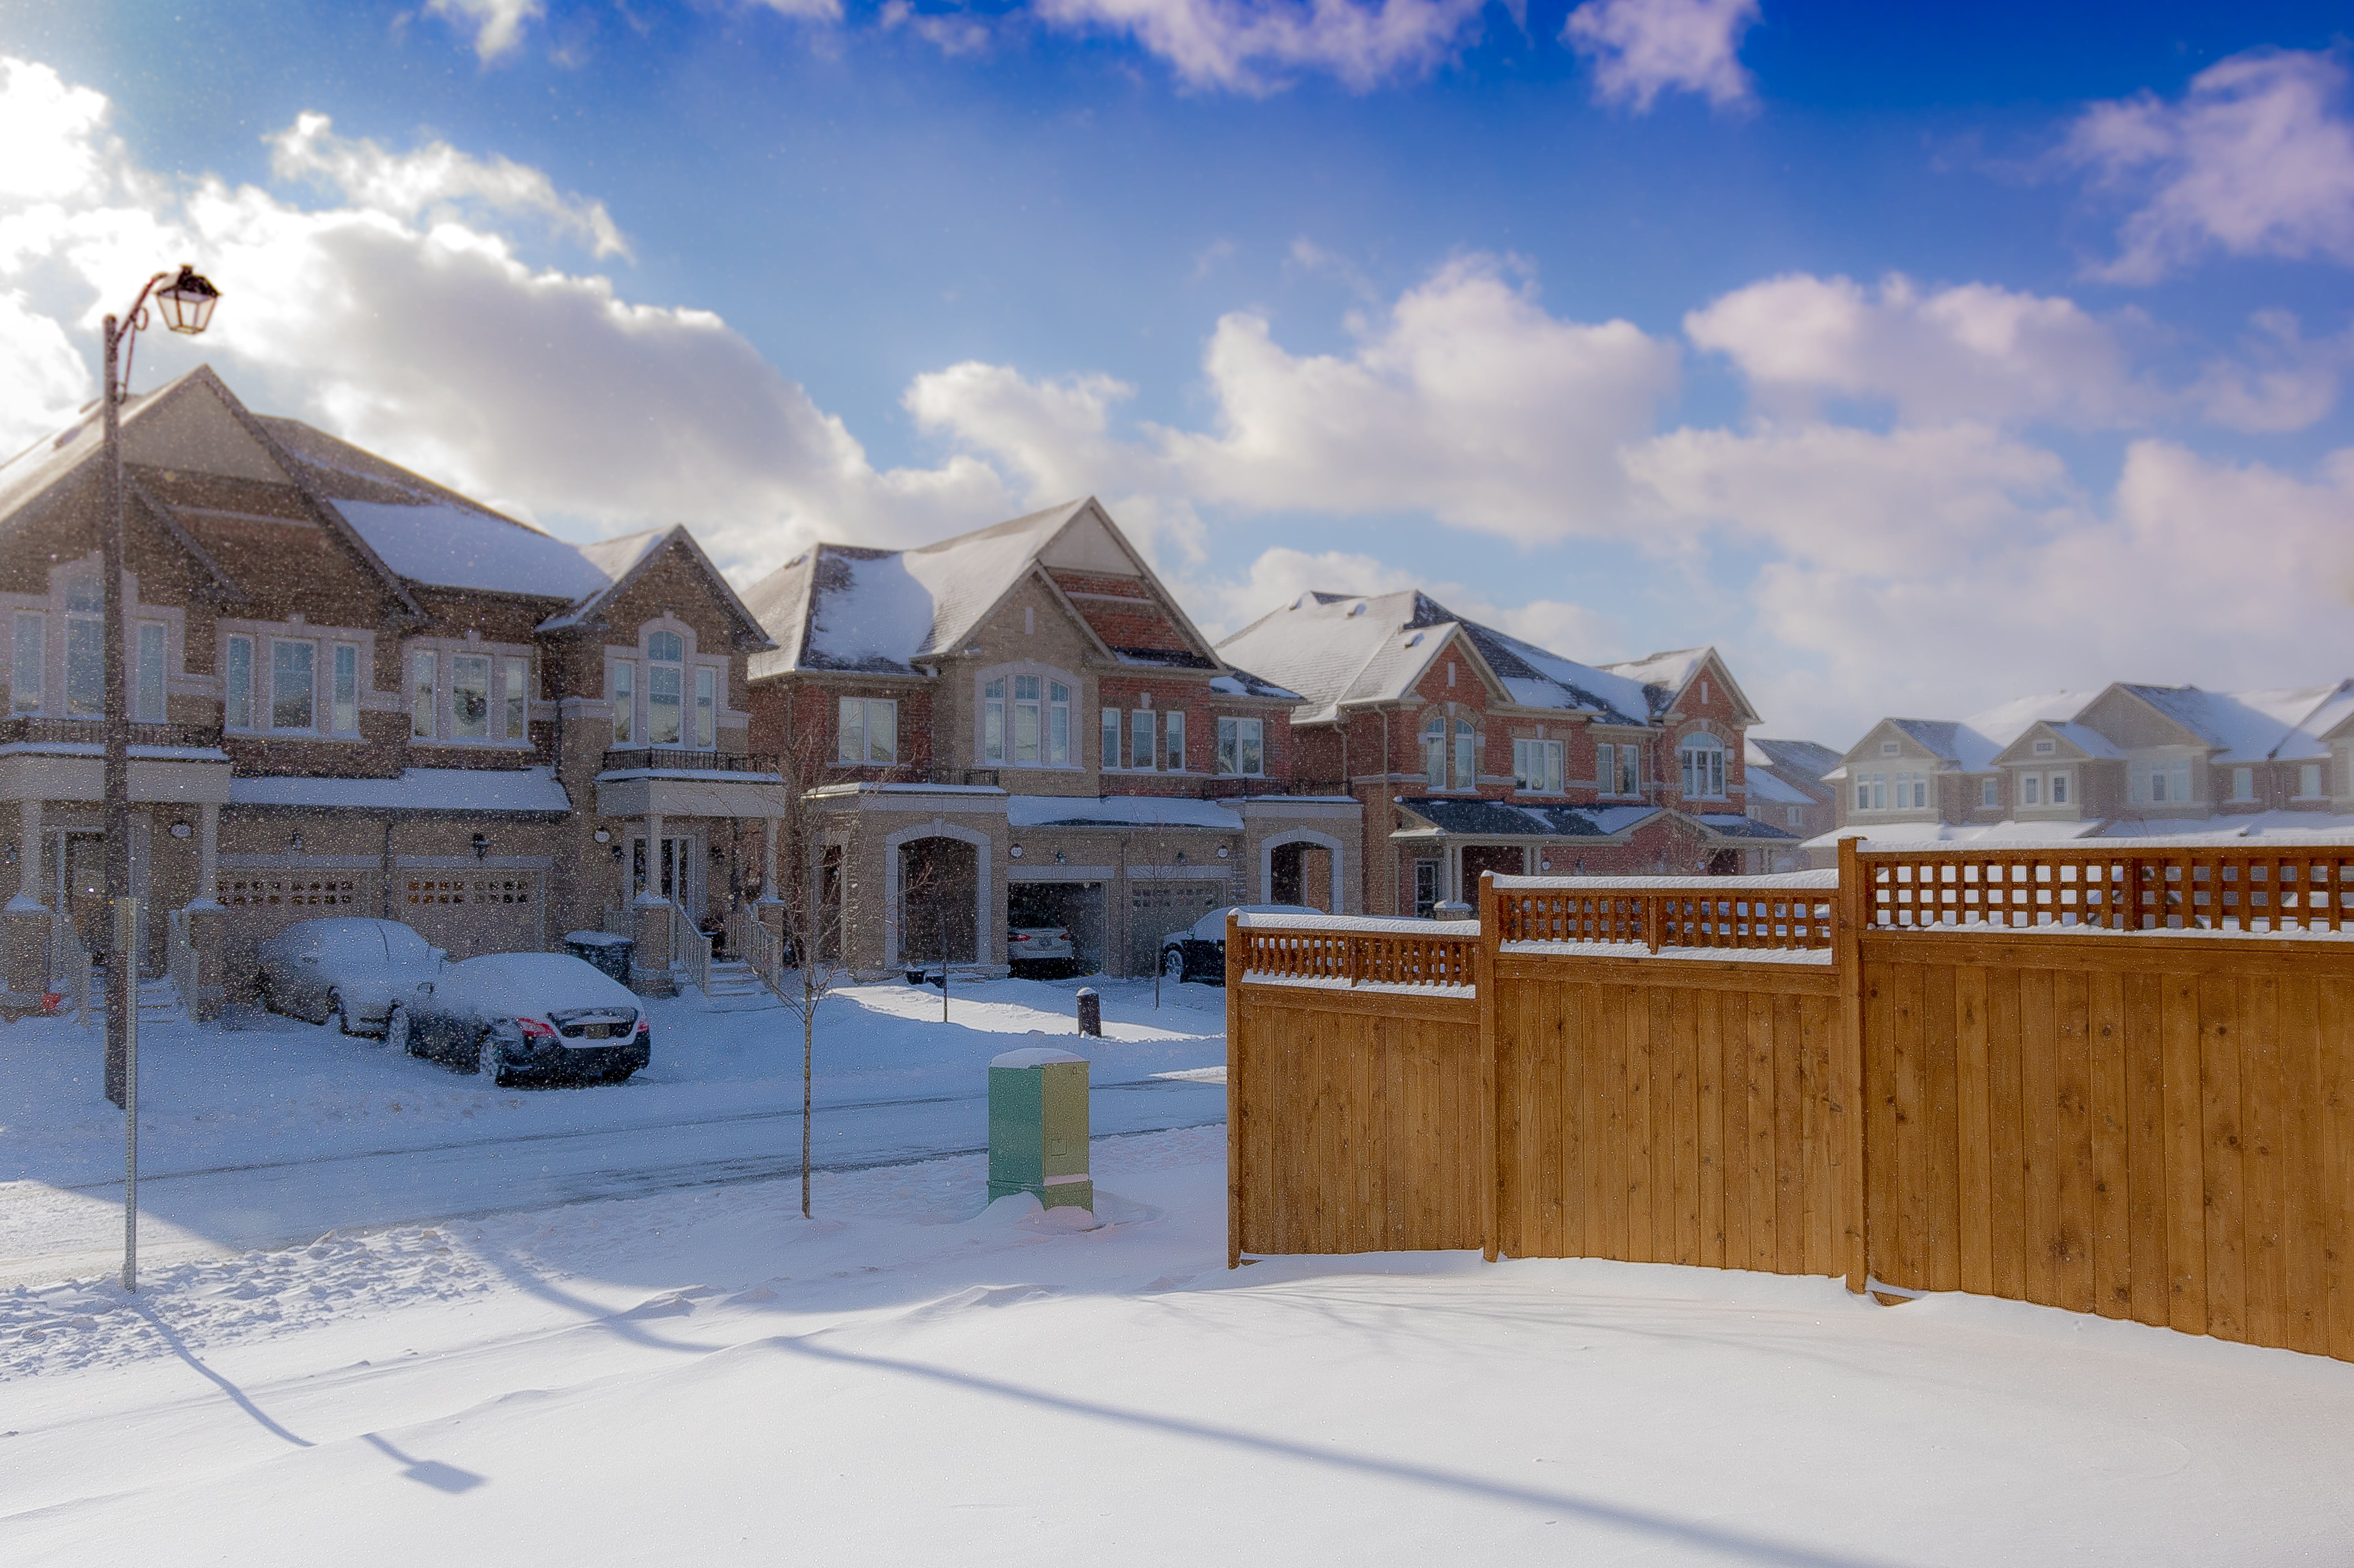 Brown 2-storey Houses during Snow